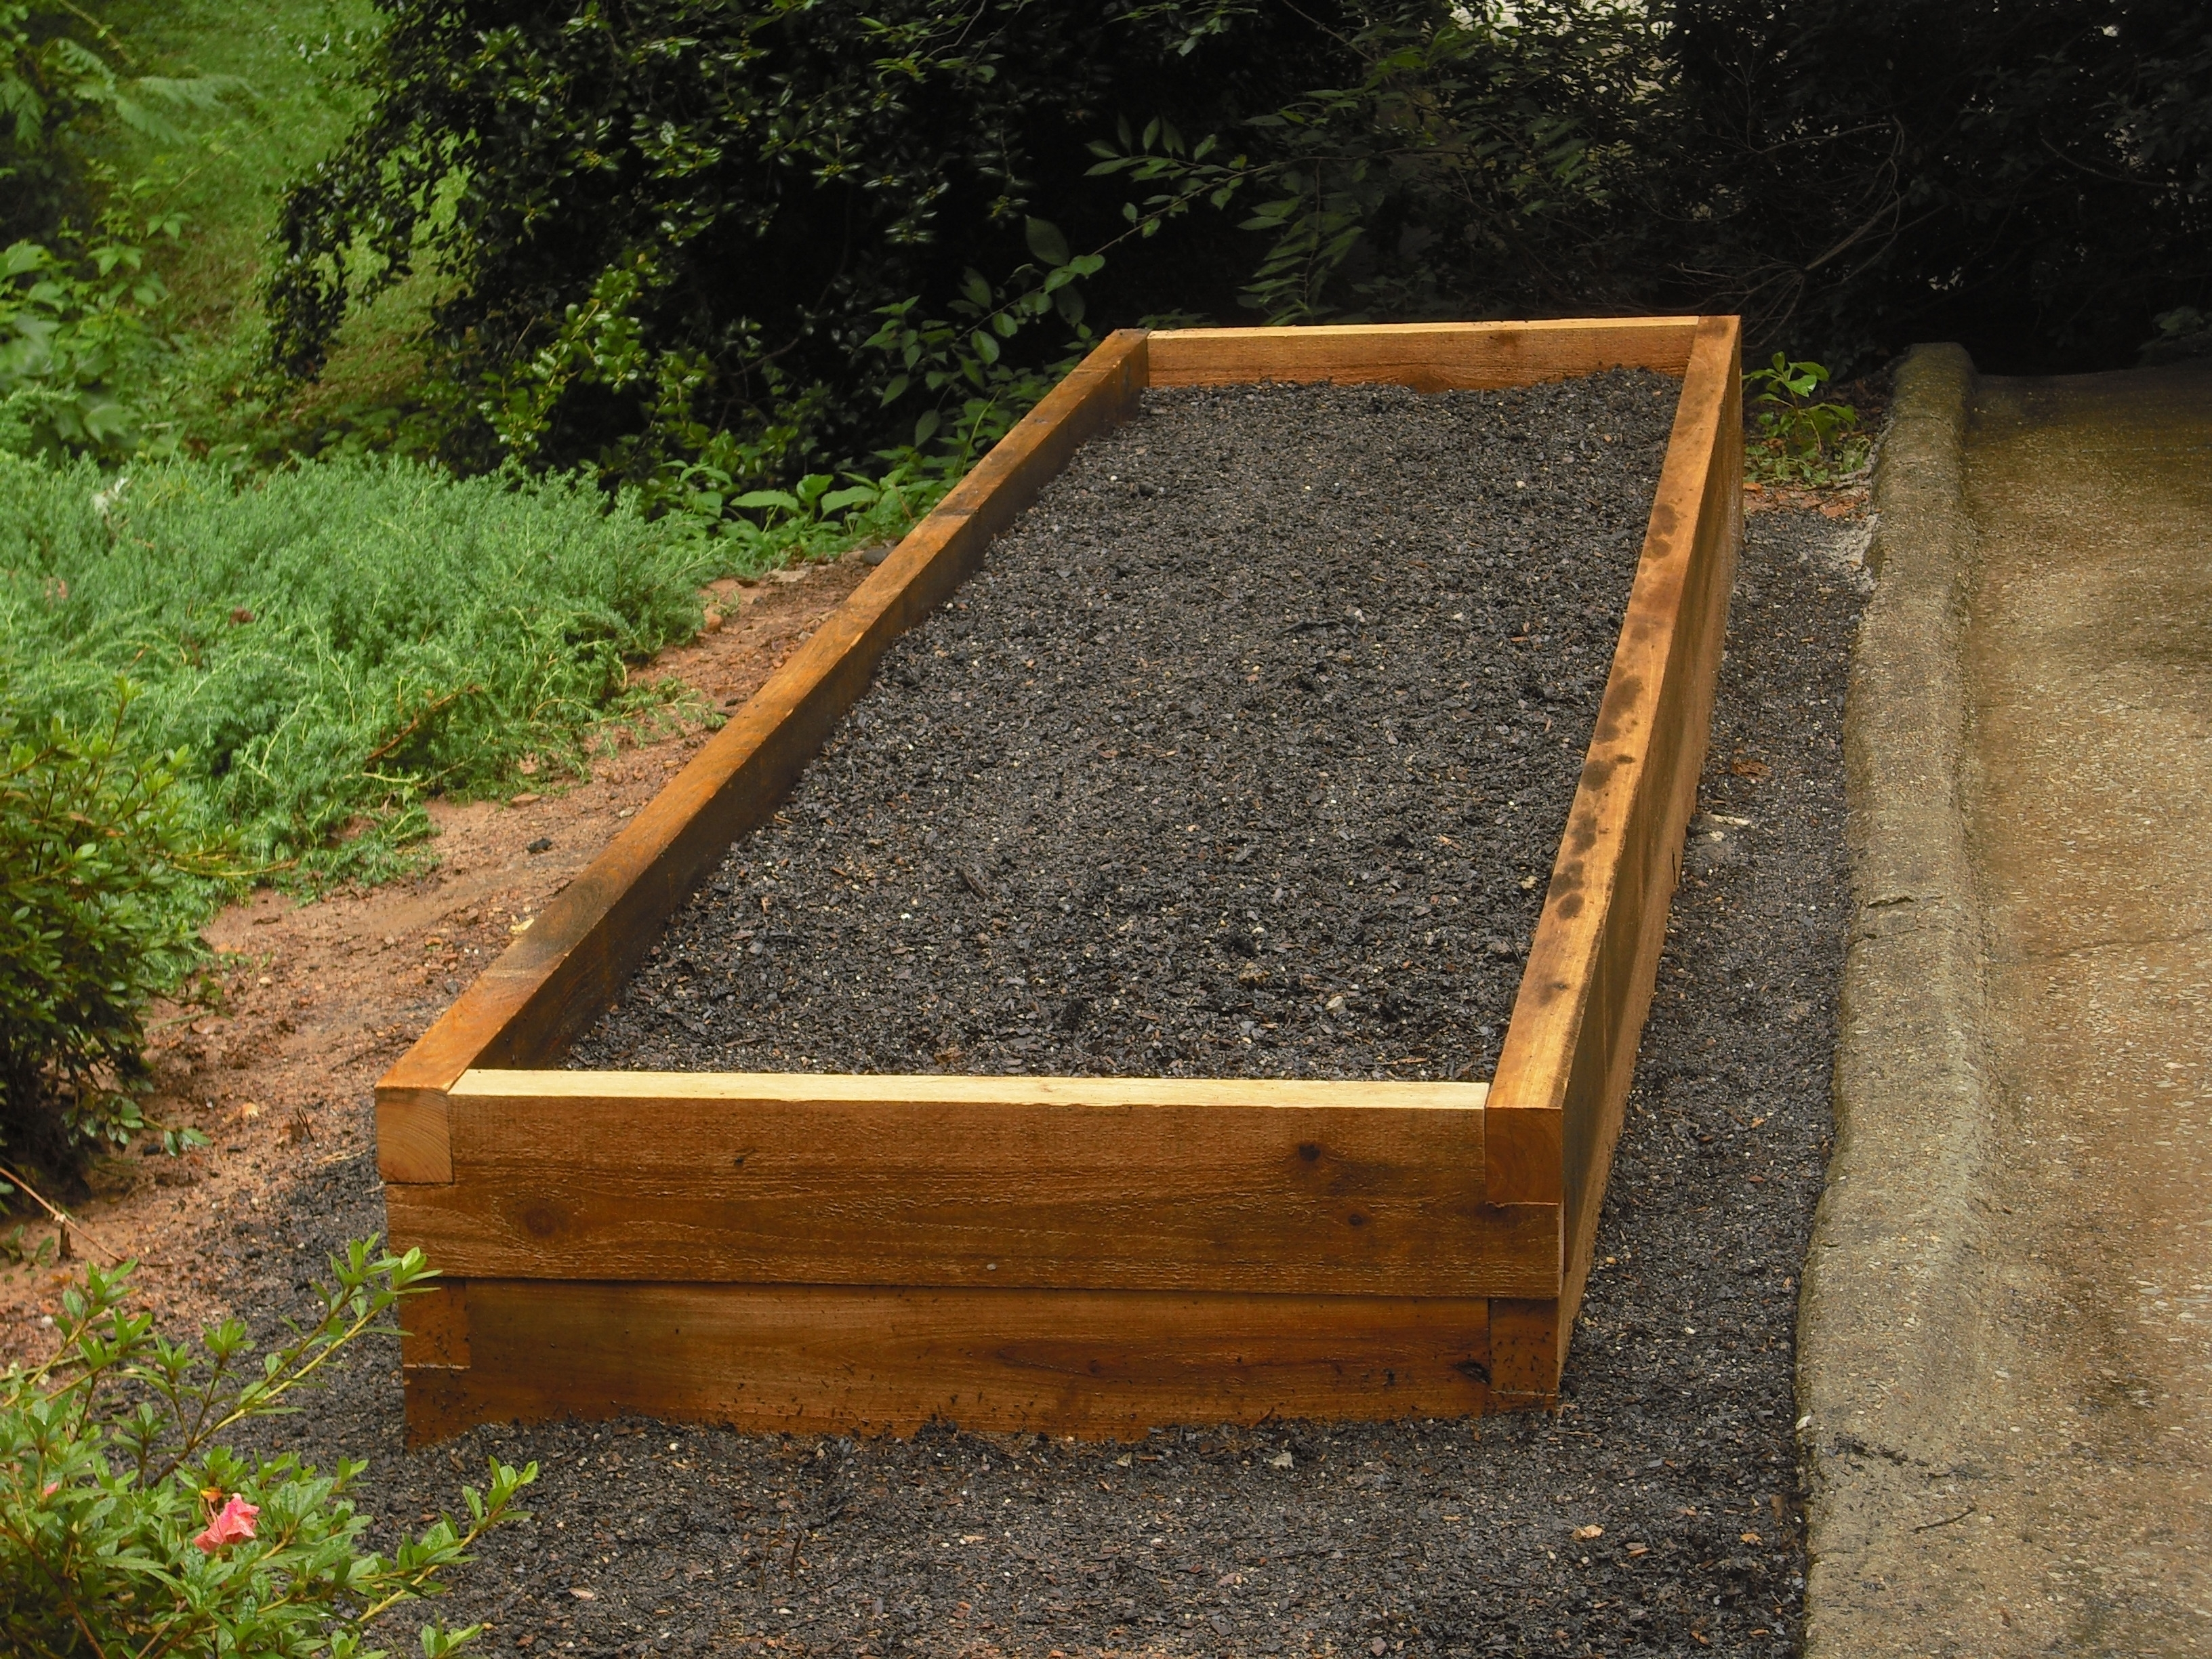 Awesome Planting Beds Design Ideas Images Home Design Ideas with regard to Best Layout For Cedar Gardens Apartments Design Ideas